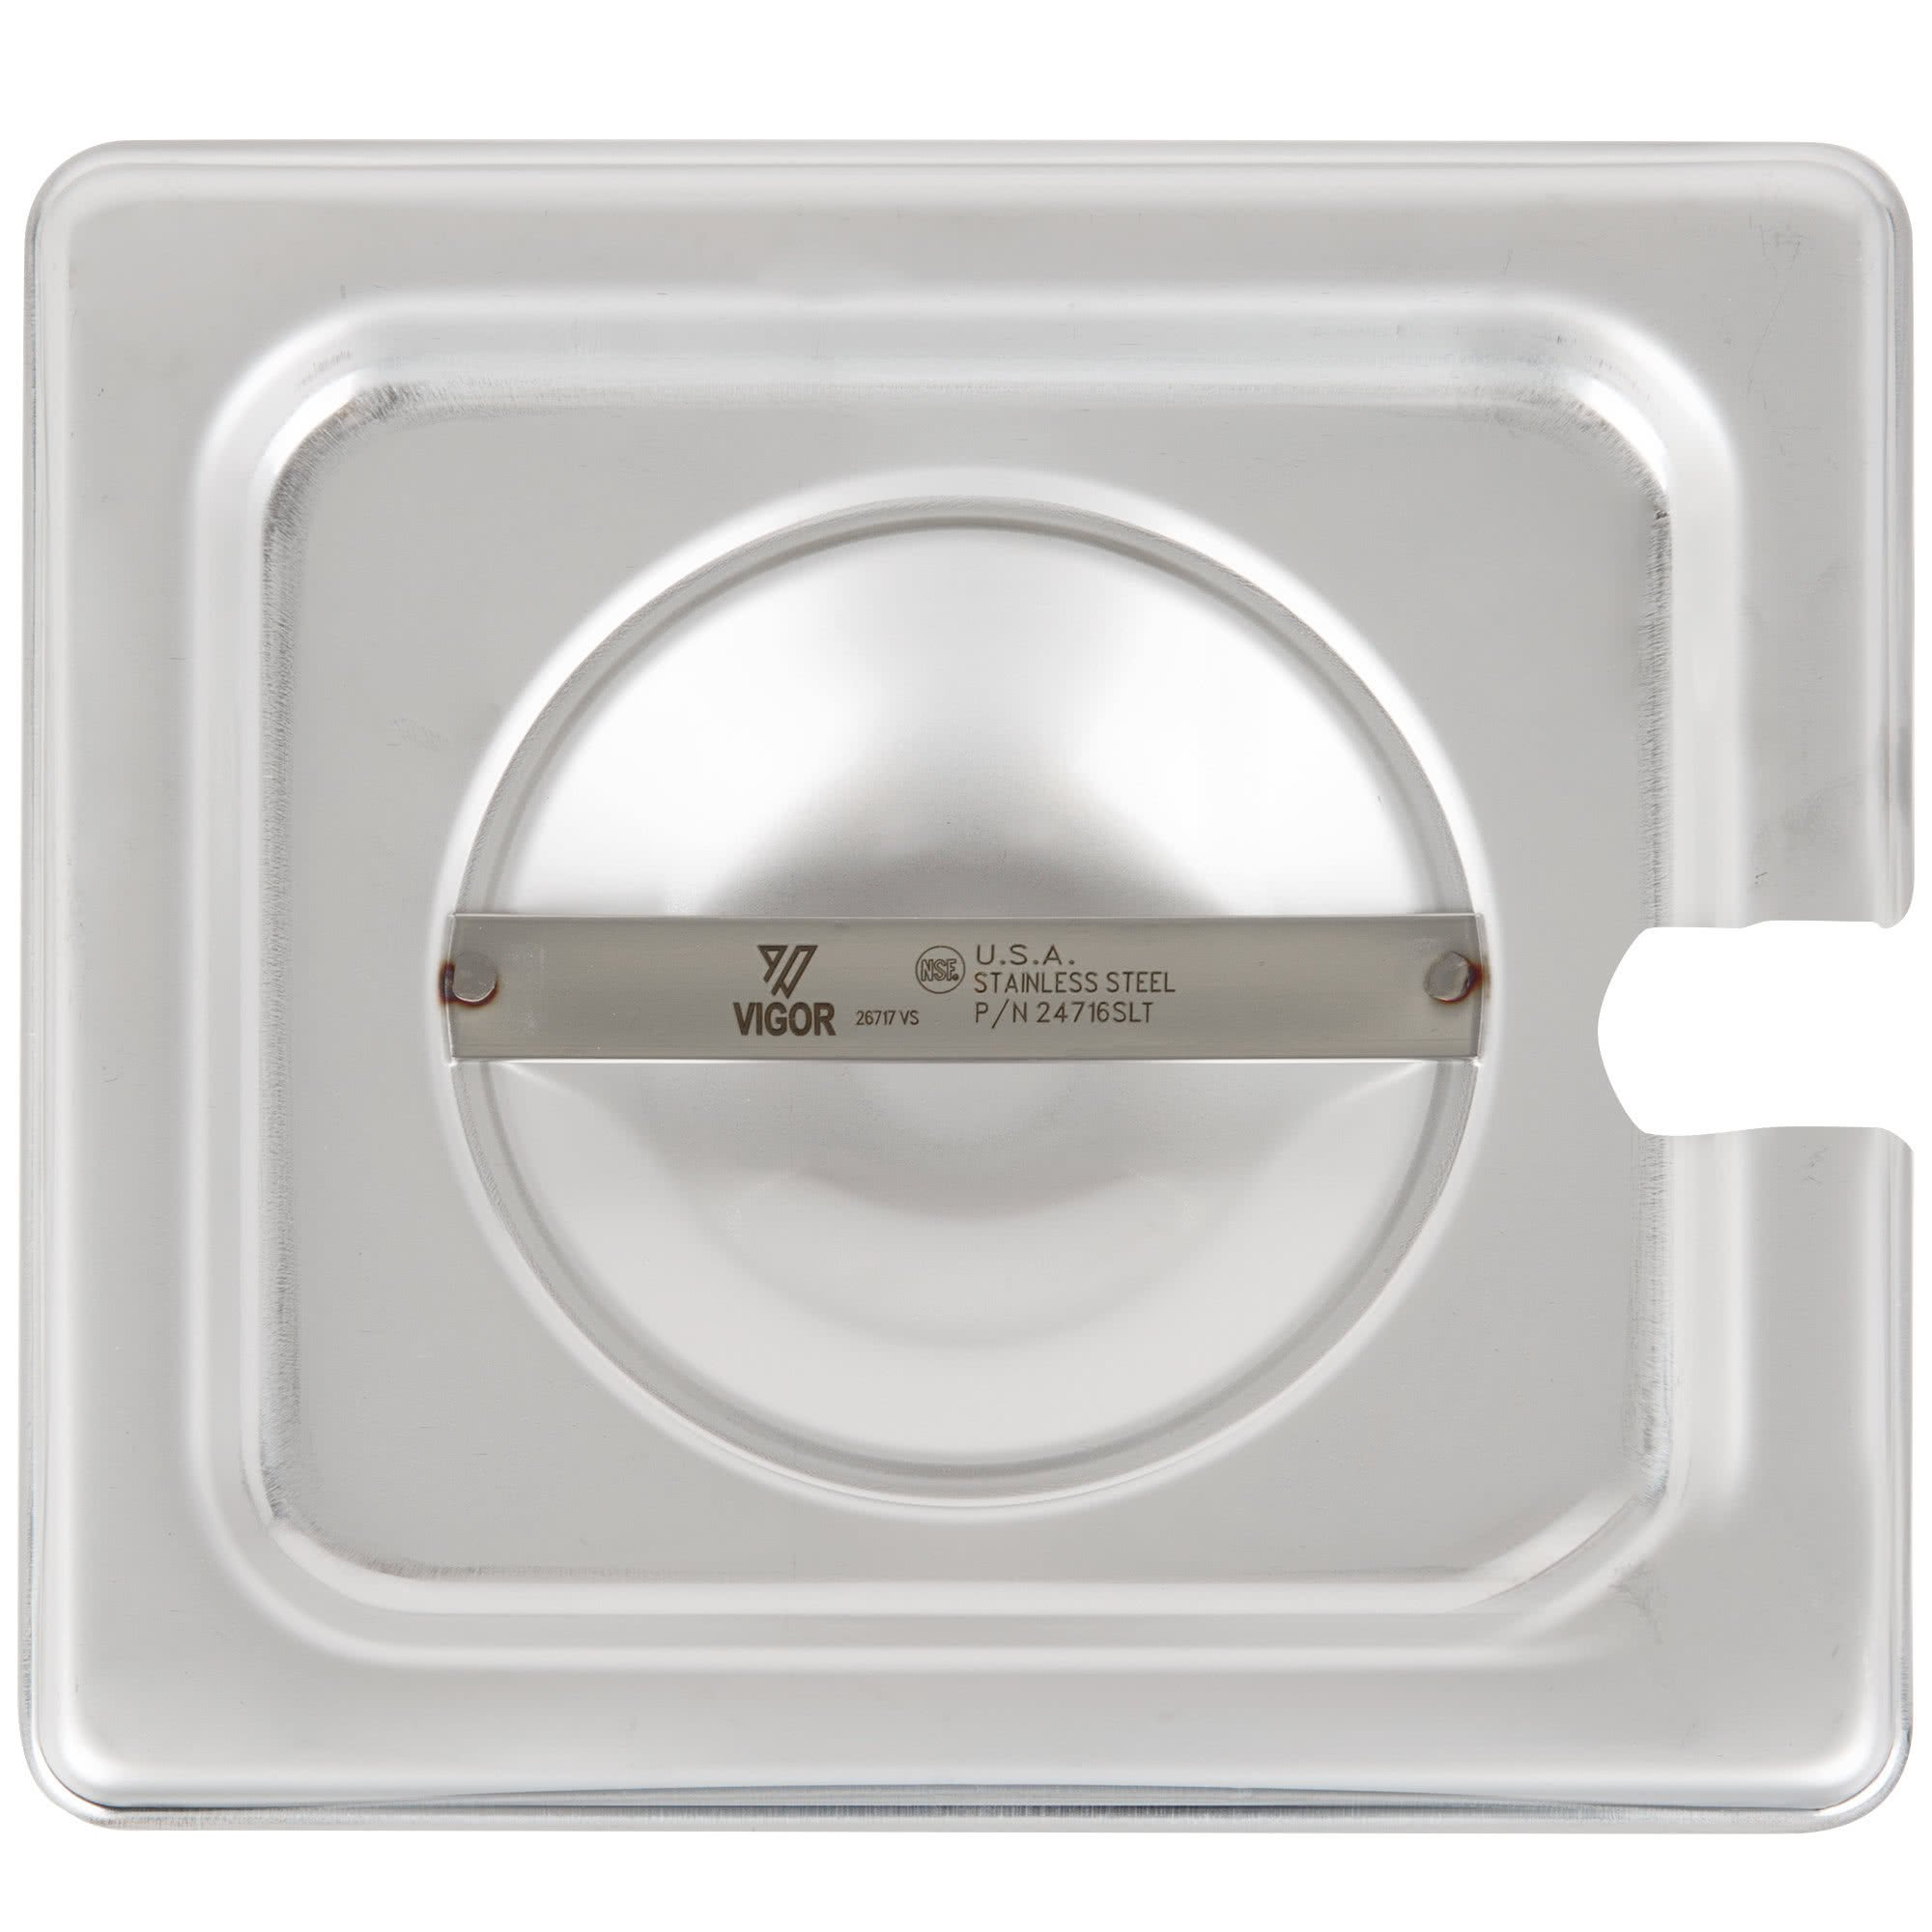 TableTop King 1/6 Size Slotted Stainless Steel Steam Table / Hotel Pan Cover